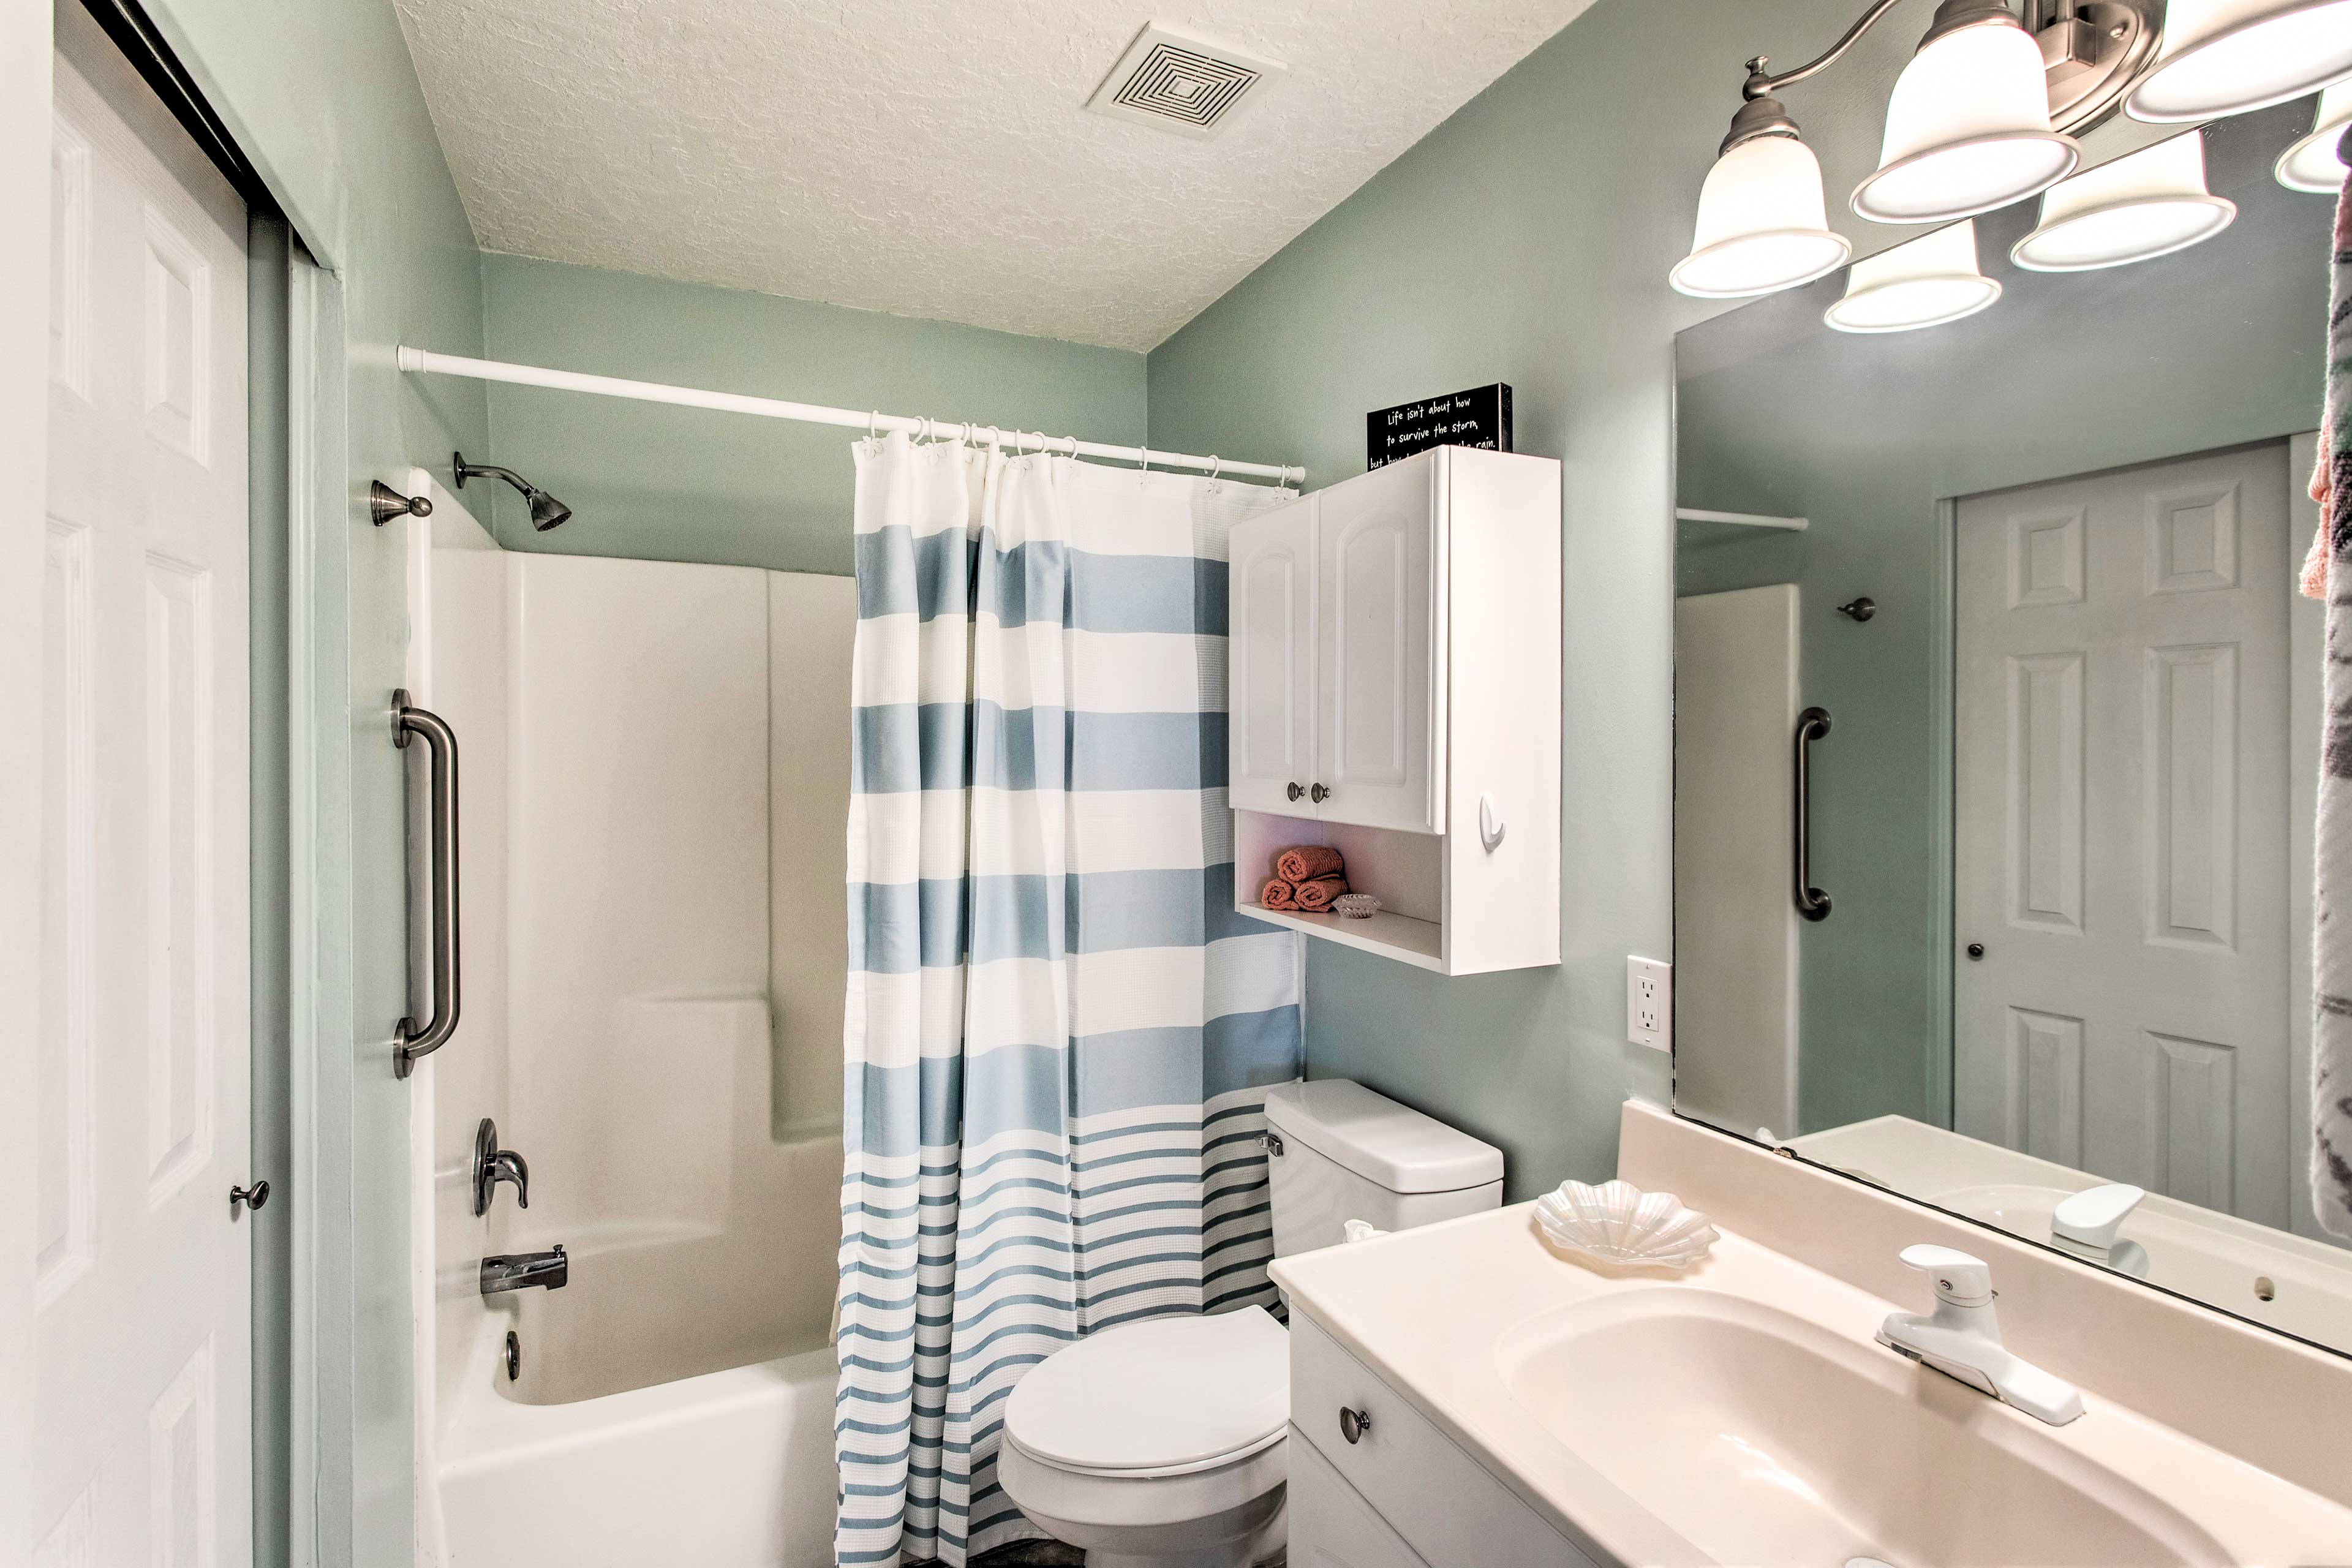 Rinse off the day in this convenient bathroom.